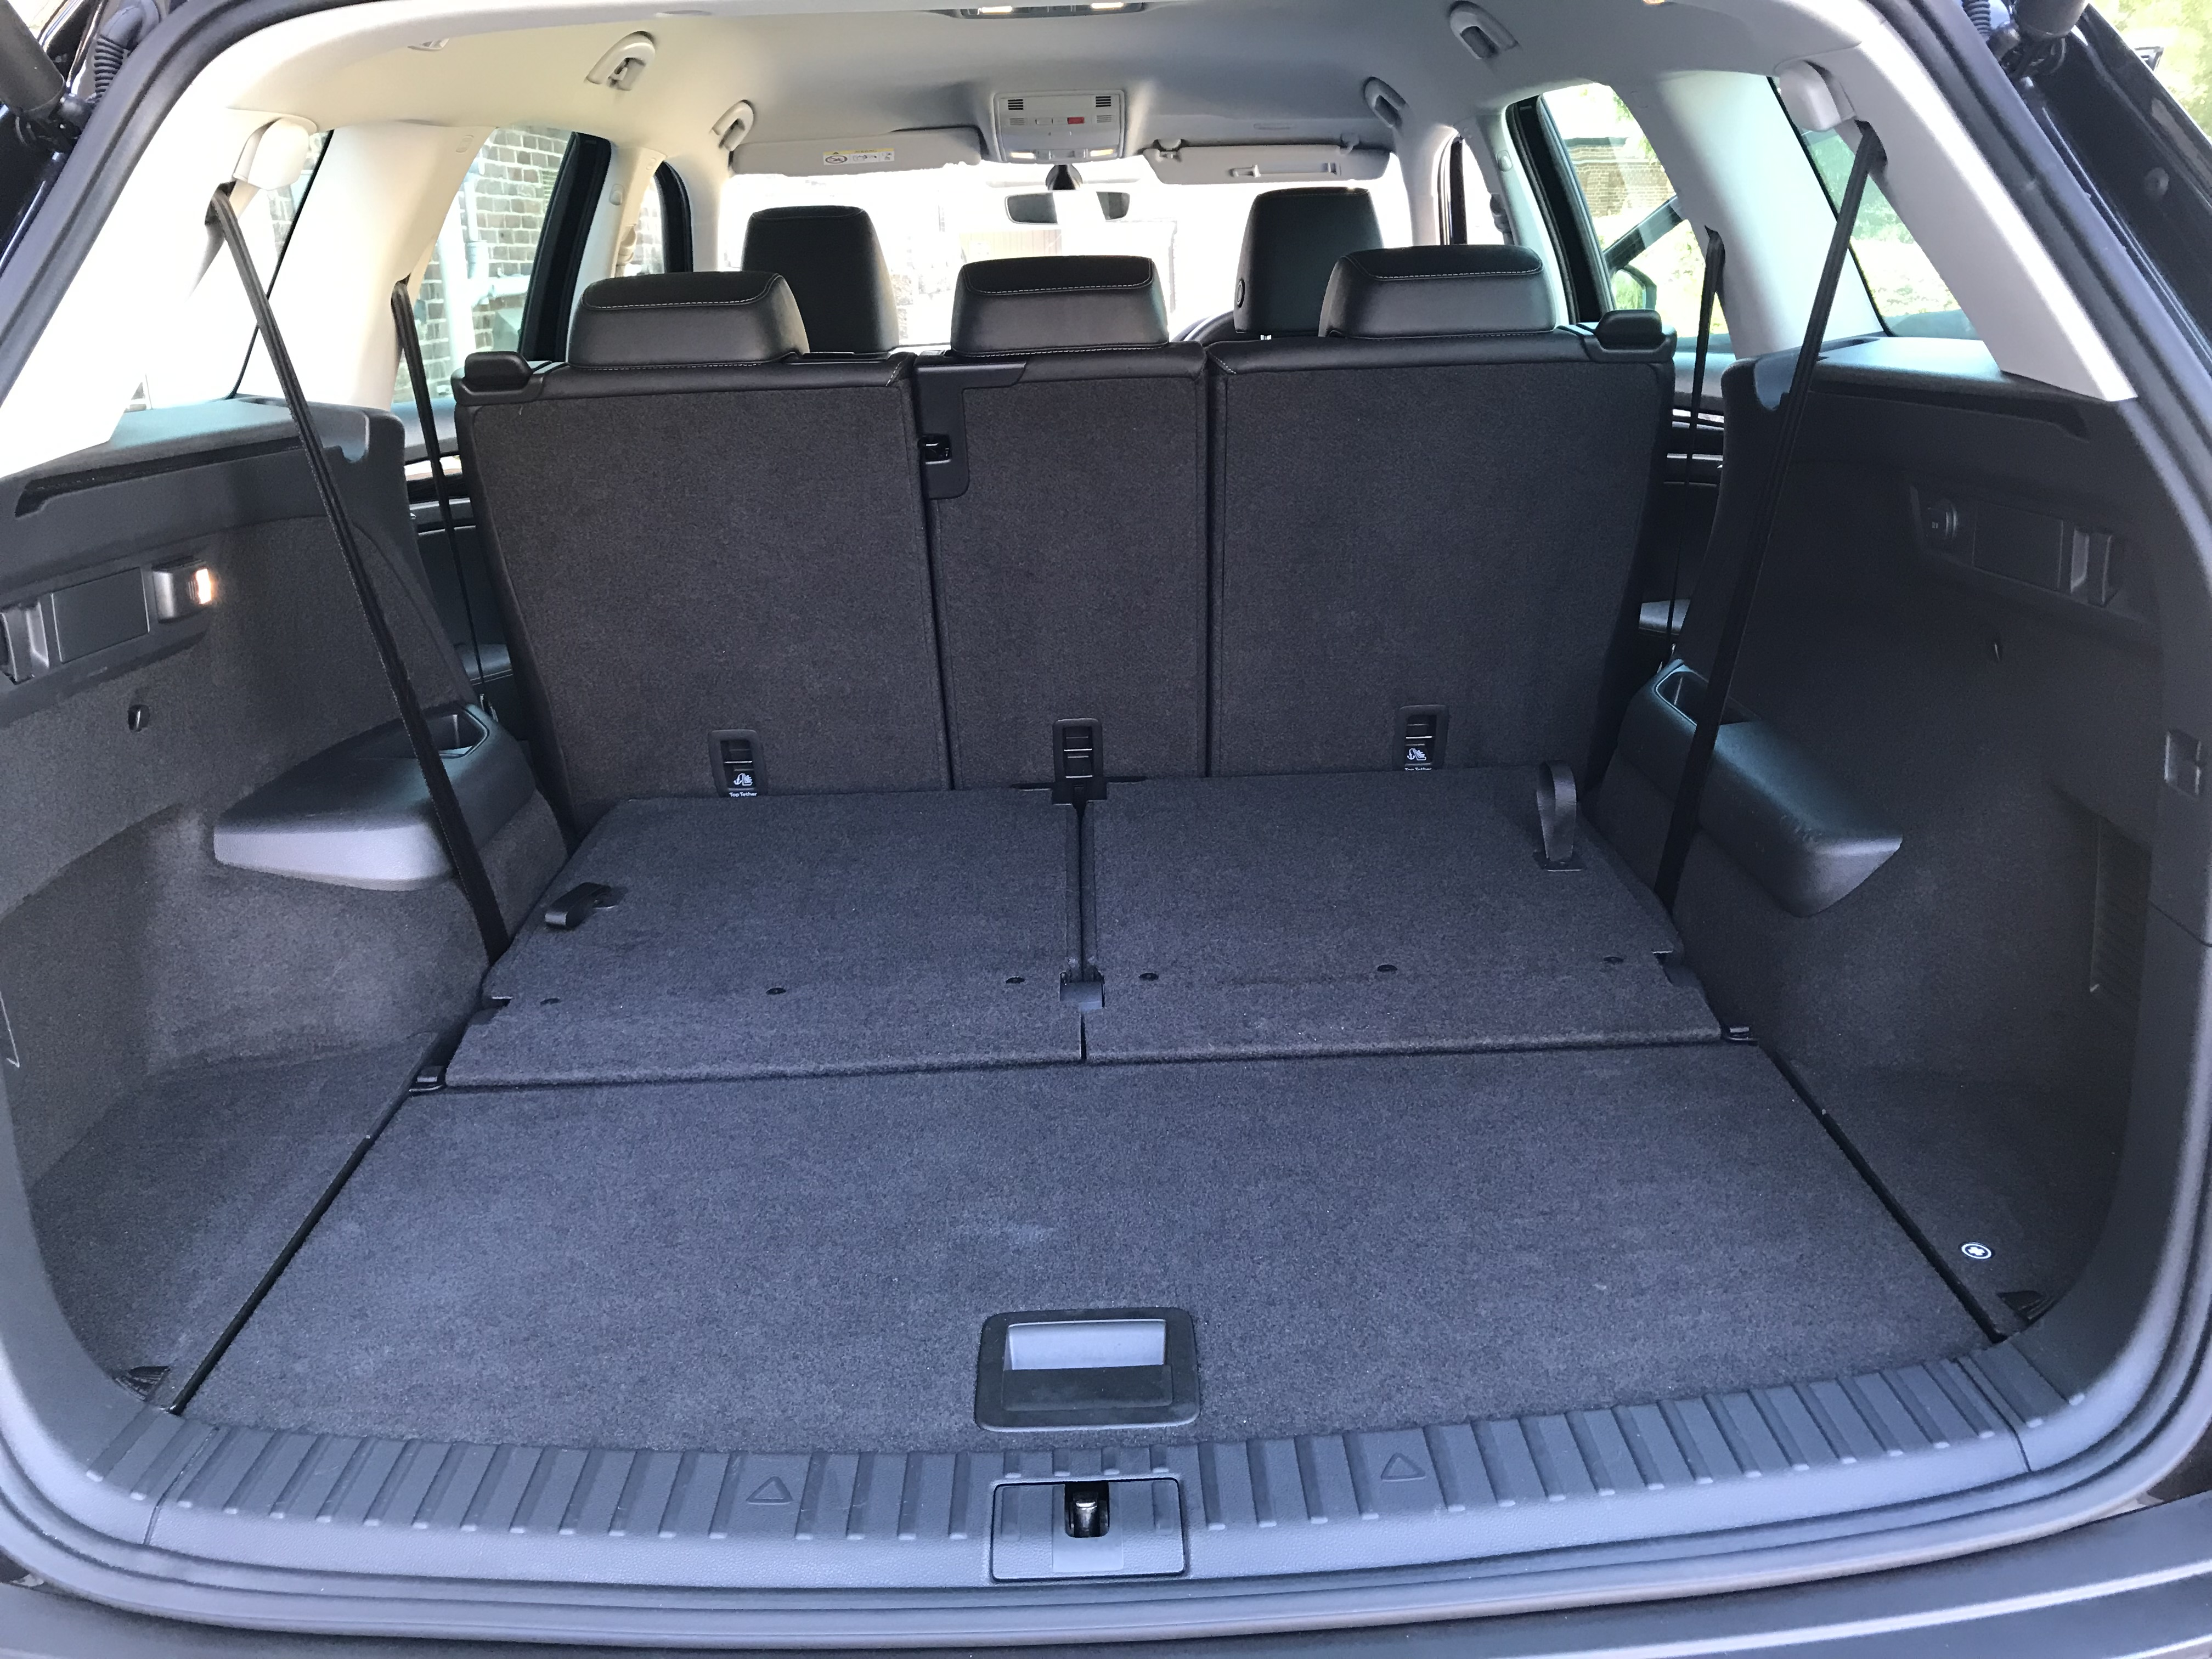 The Kodiaq's boot offers up a massive load area